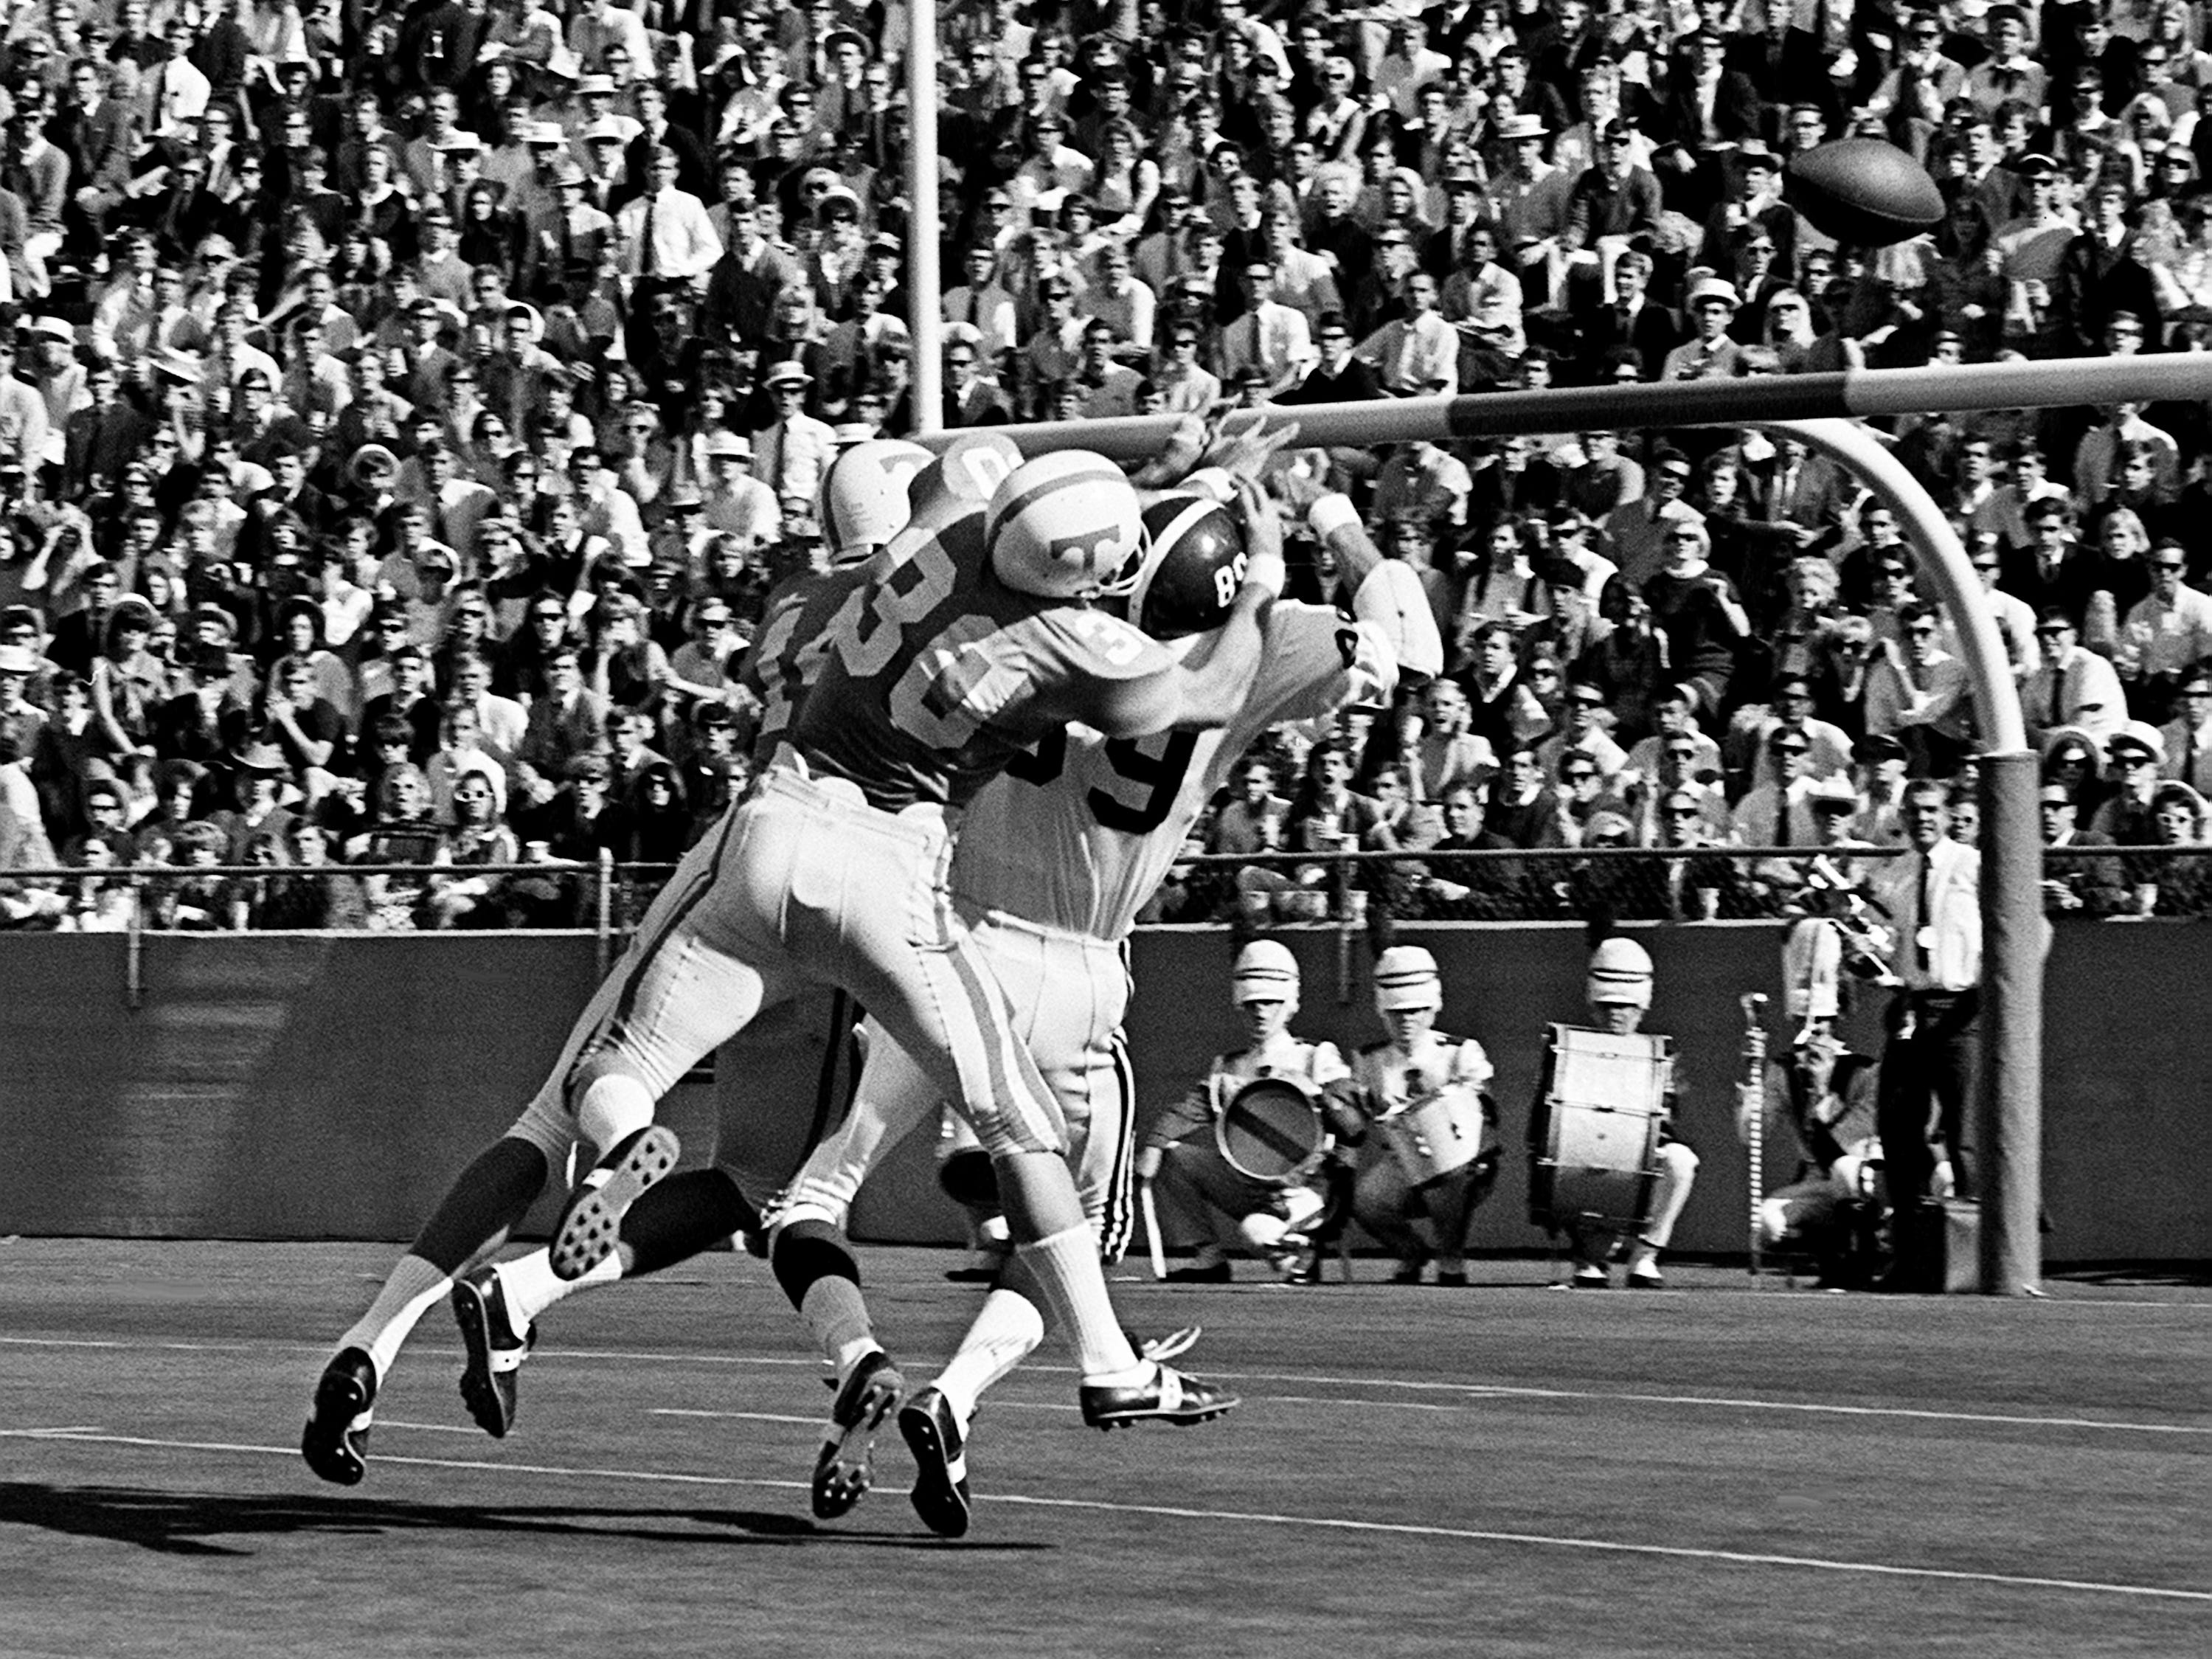 Tennessee defensive backs Bill Young (14) and Jim Weatherford (30) smacks Alabama receiver Conrad Fowler (89) to break up a pass near the goal line at Neyland Stadium Oct. 19, 1968.